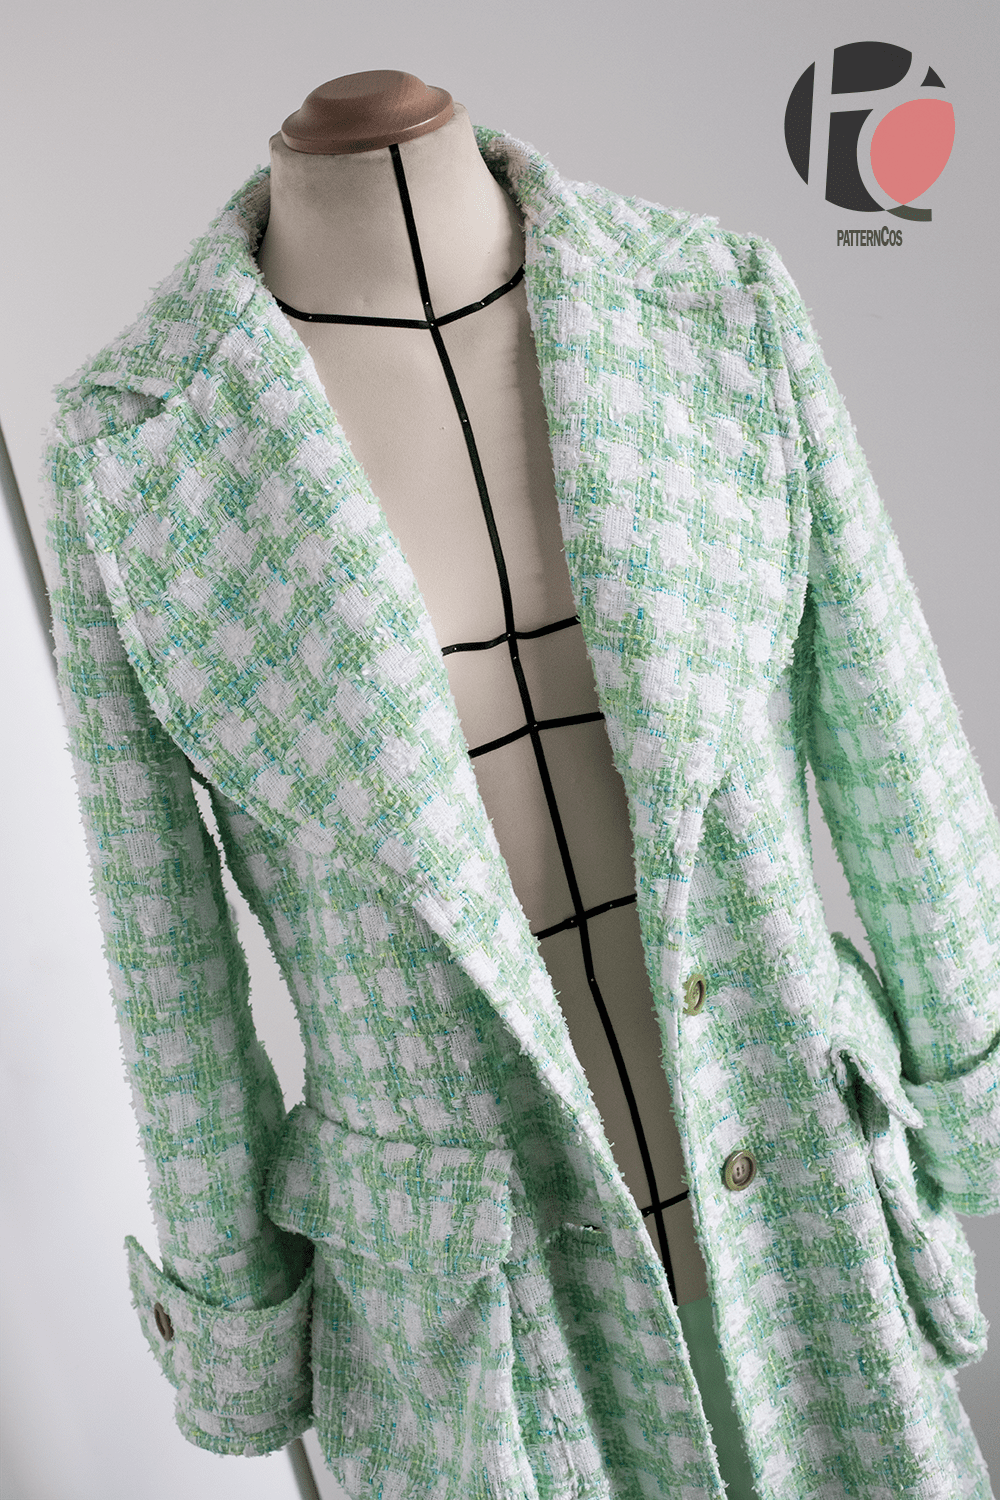 Chaqueta_Dion_photo_3_PatternCos_Academia